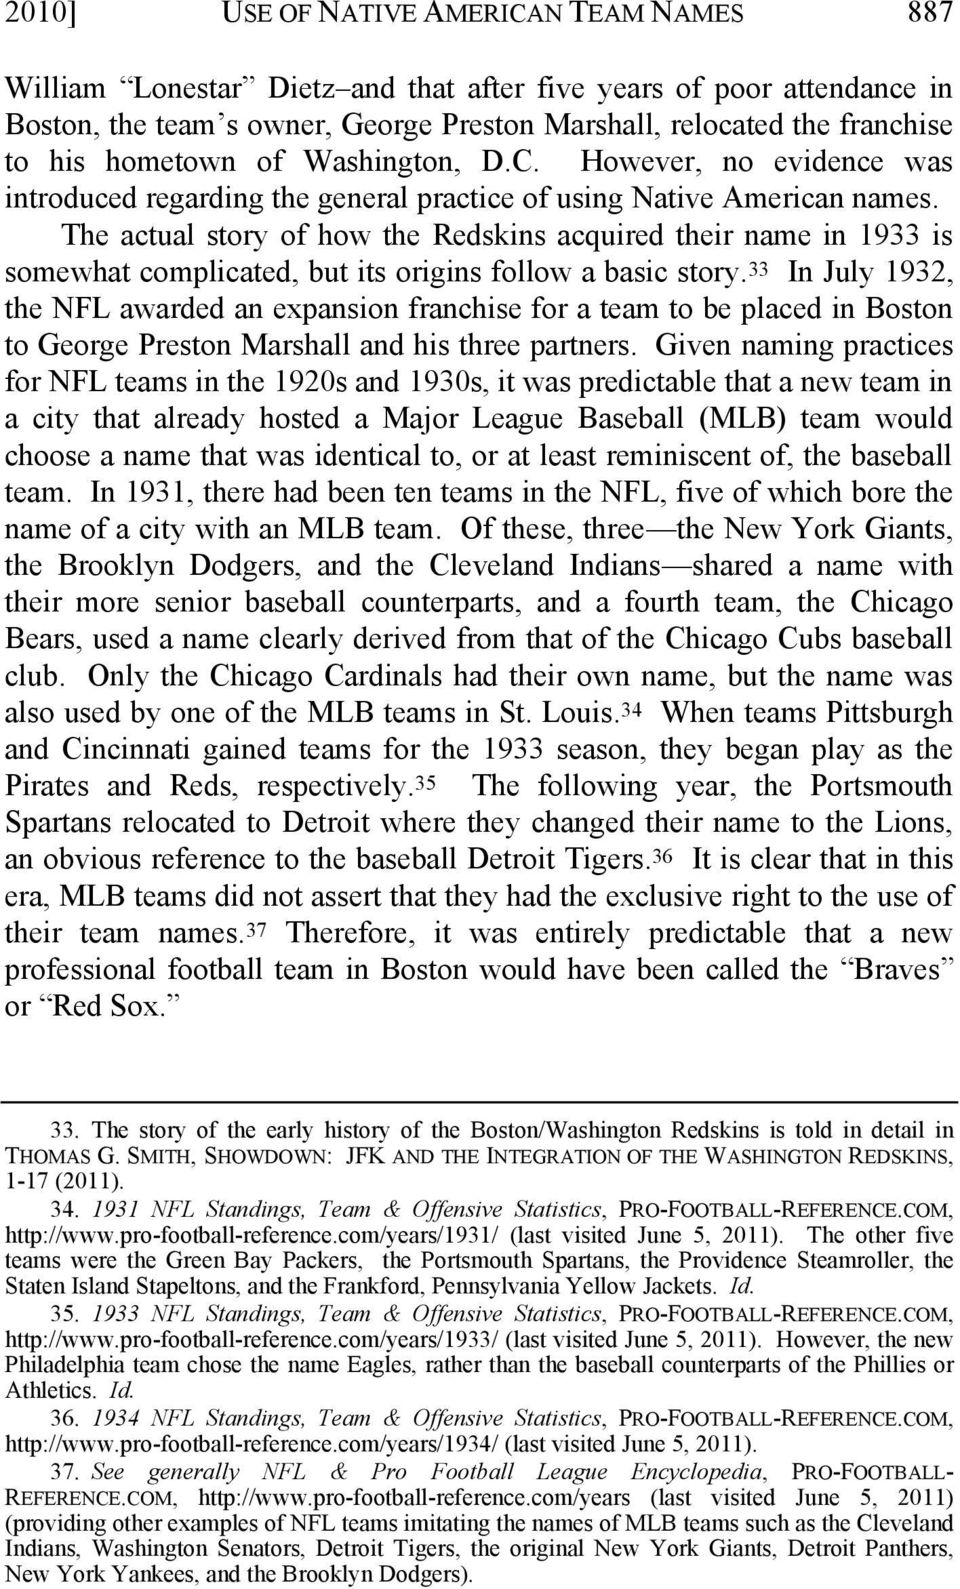 The actual story of how the Redskins acquired their name in 1933 is somewhat complicated, but its origins follow a basic story.